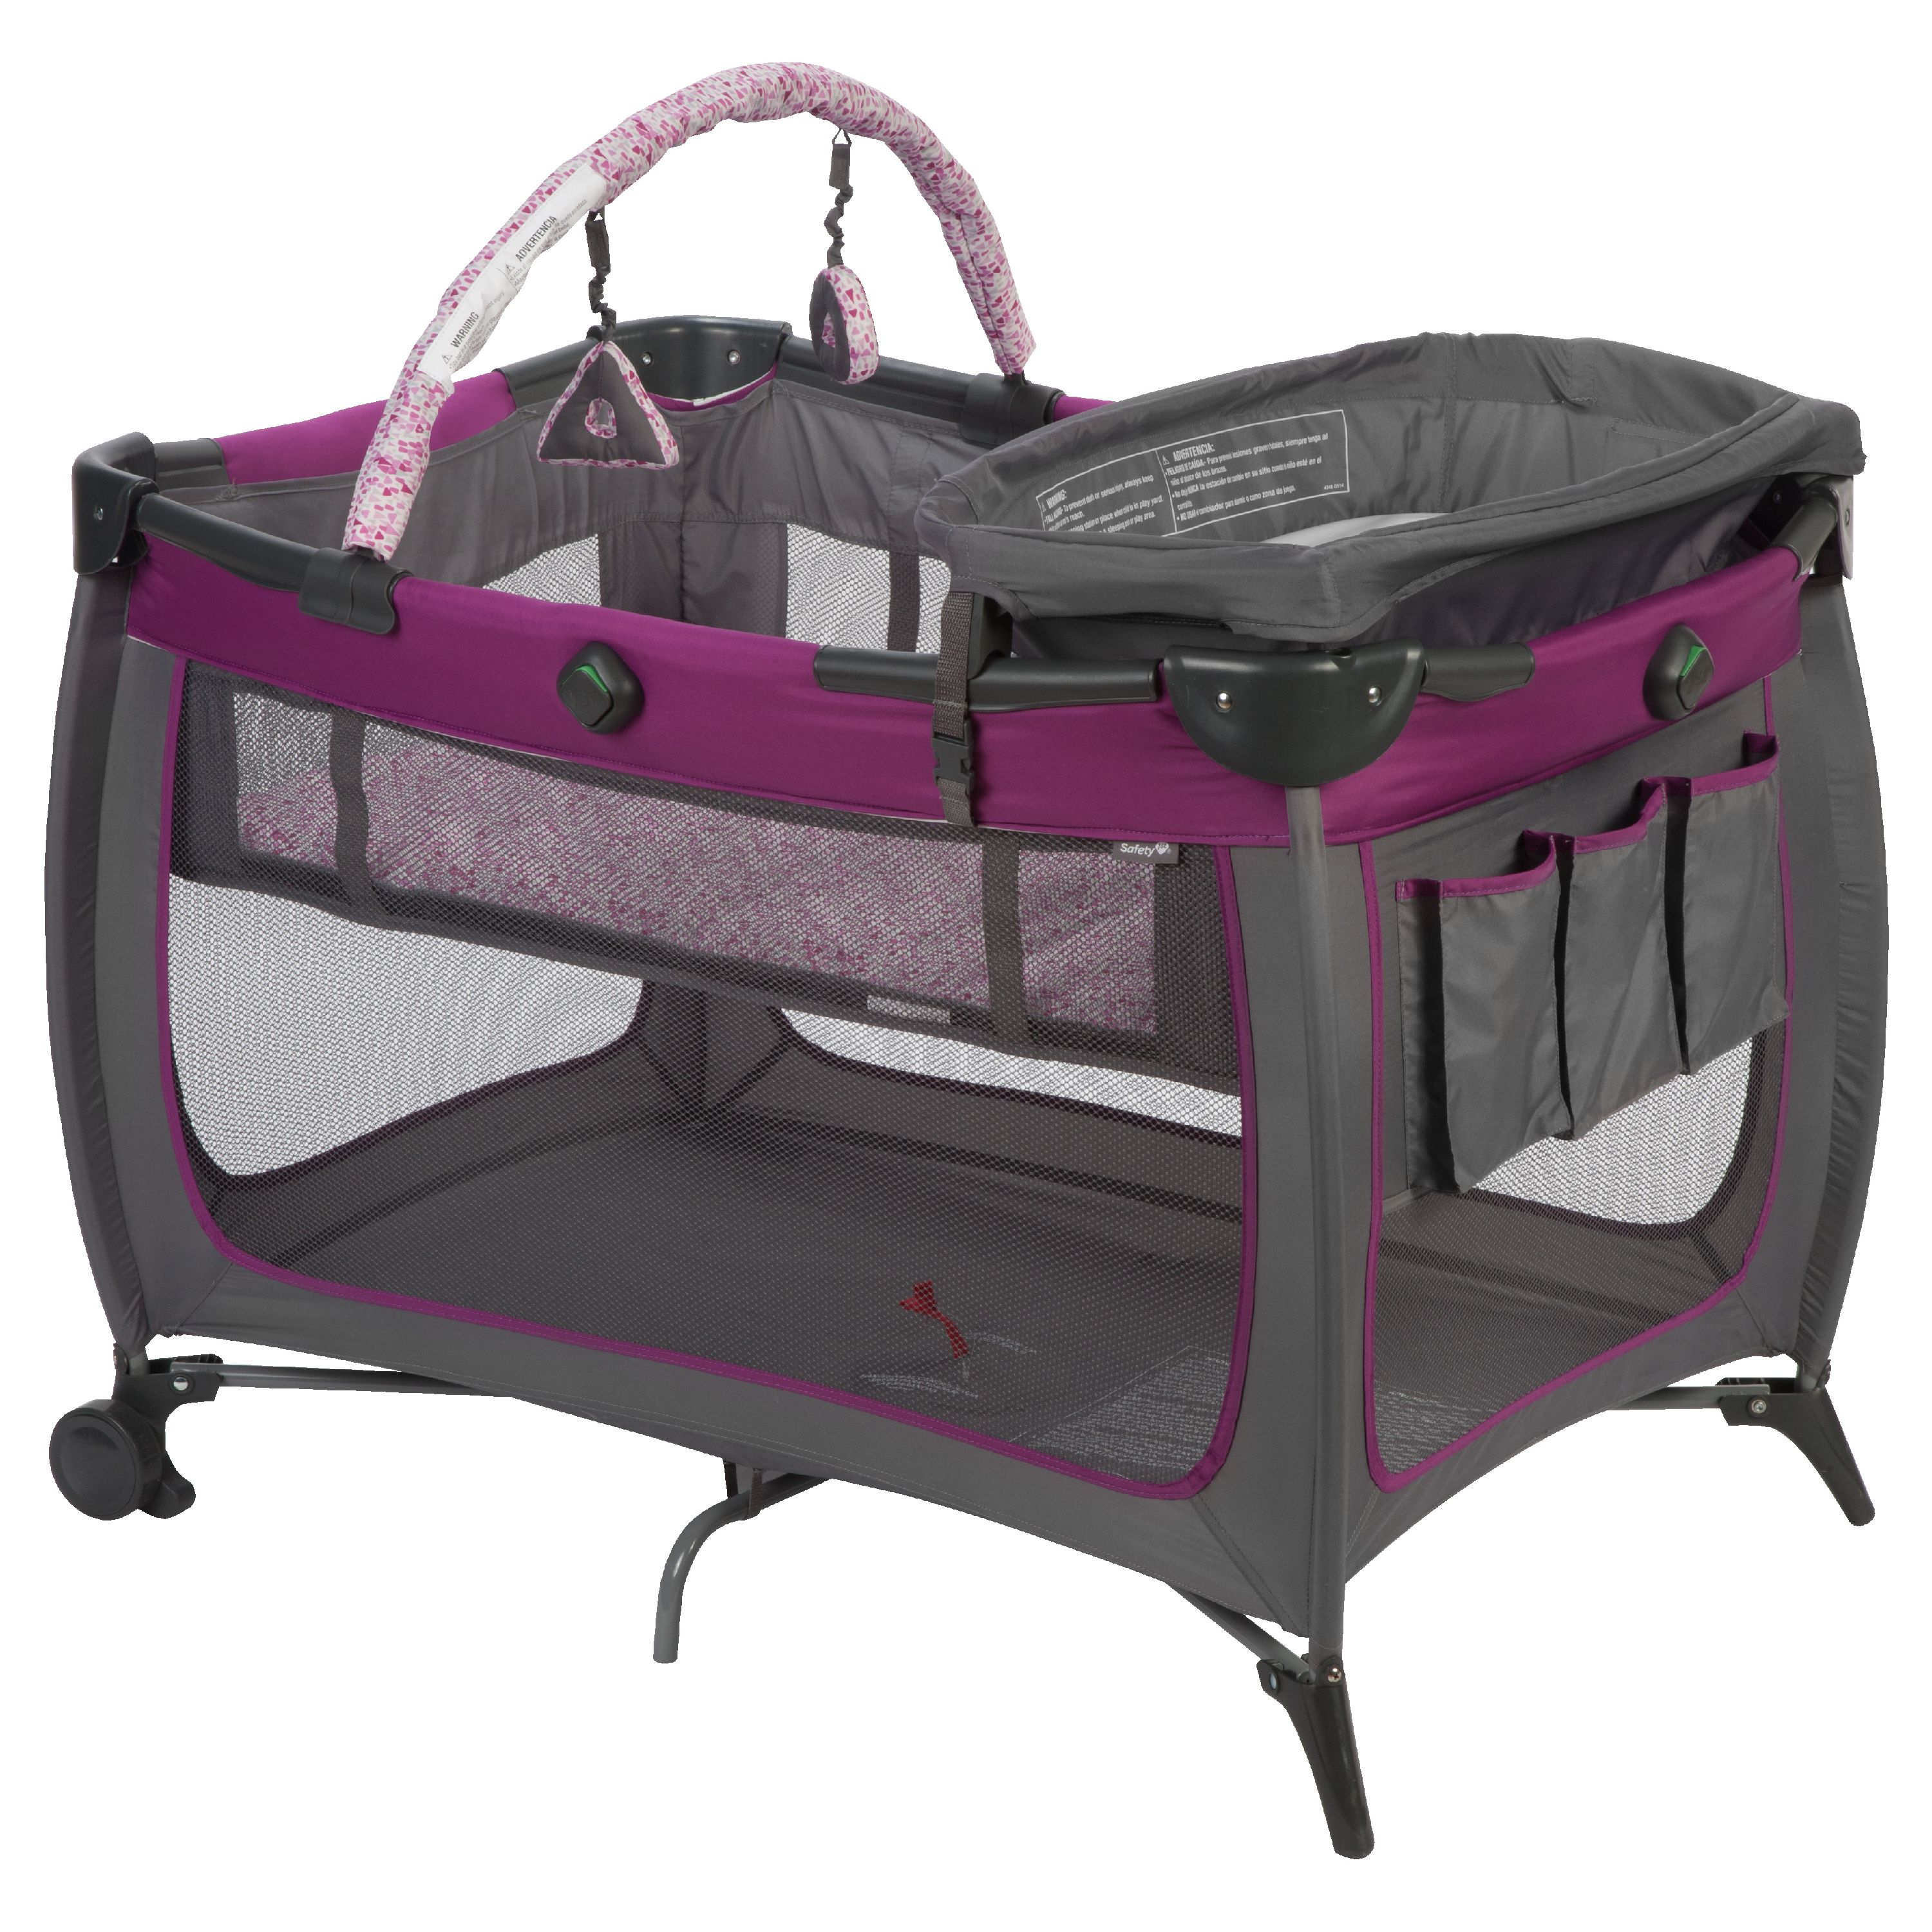 Safety 1st Prelude™ Portable Baby Play Yard, Sorbet